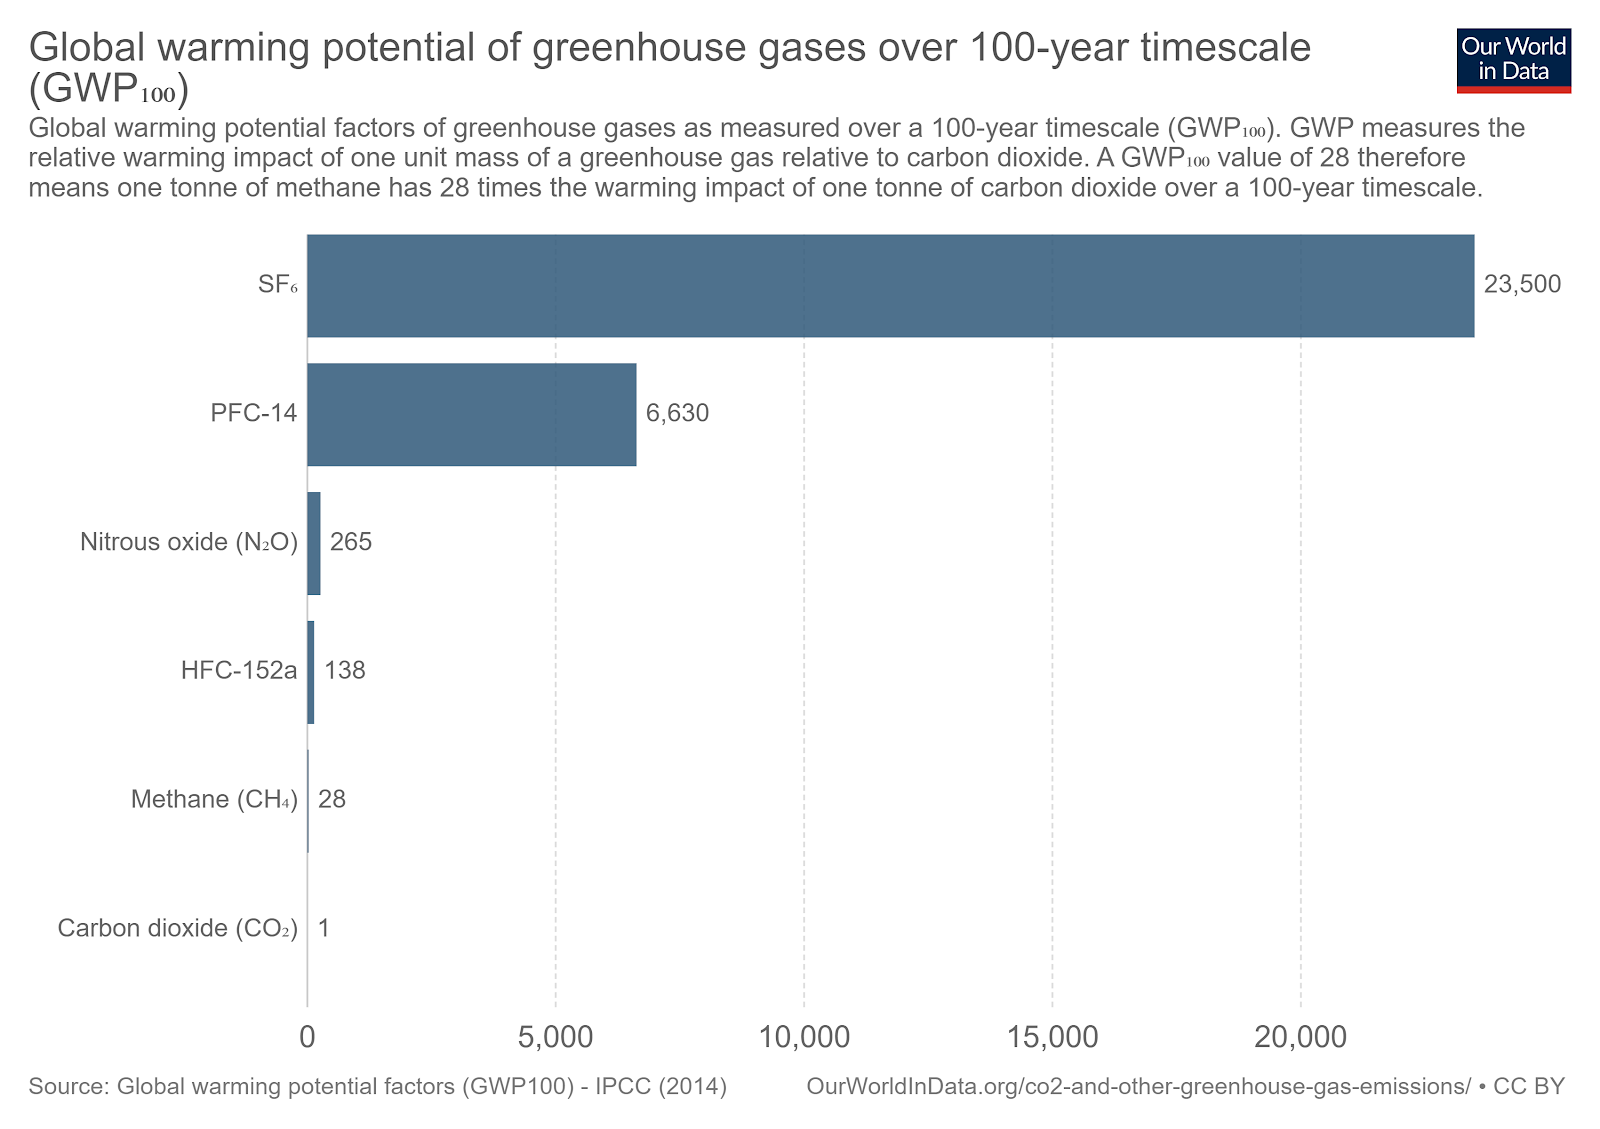 Bar chart shpowing the global warming potential of various greenhouse gases